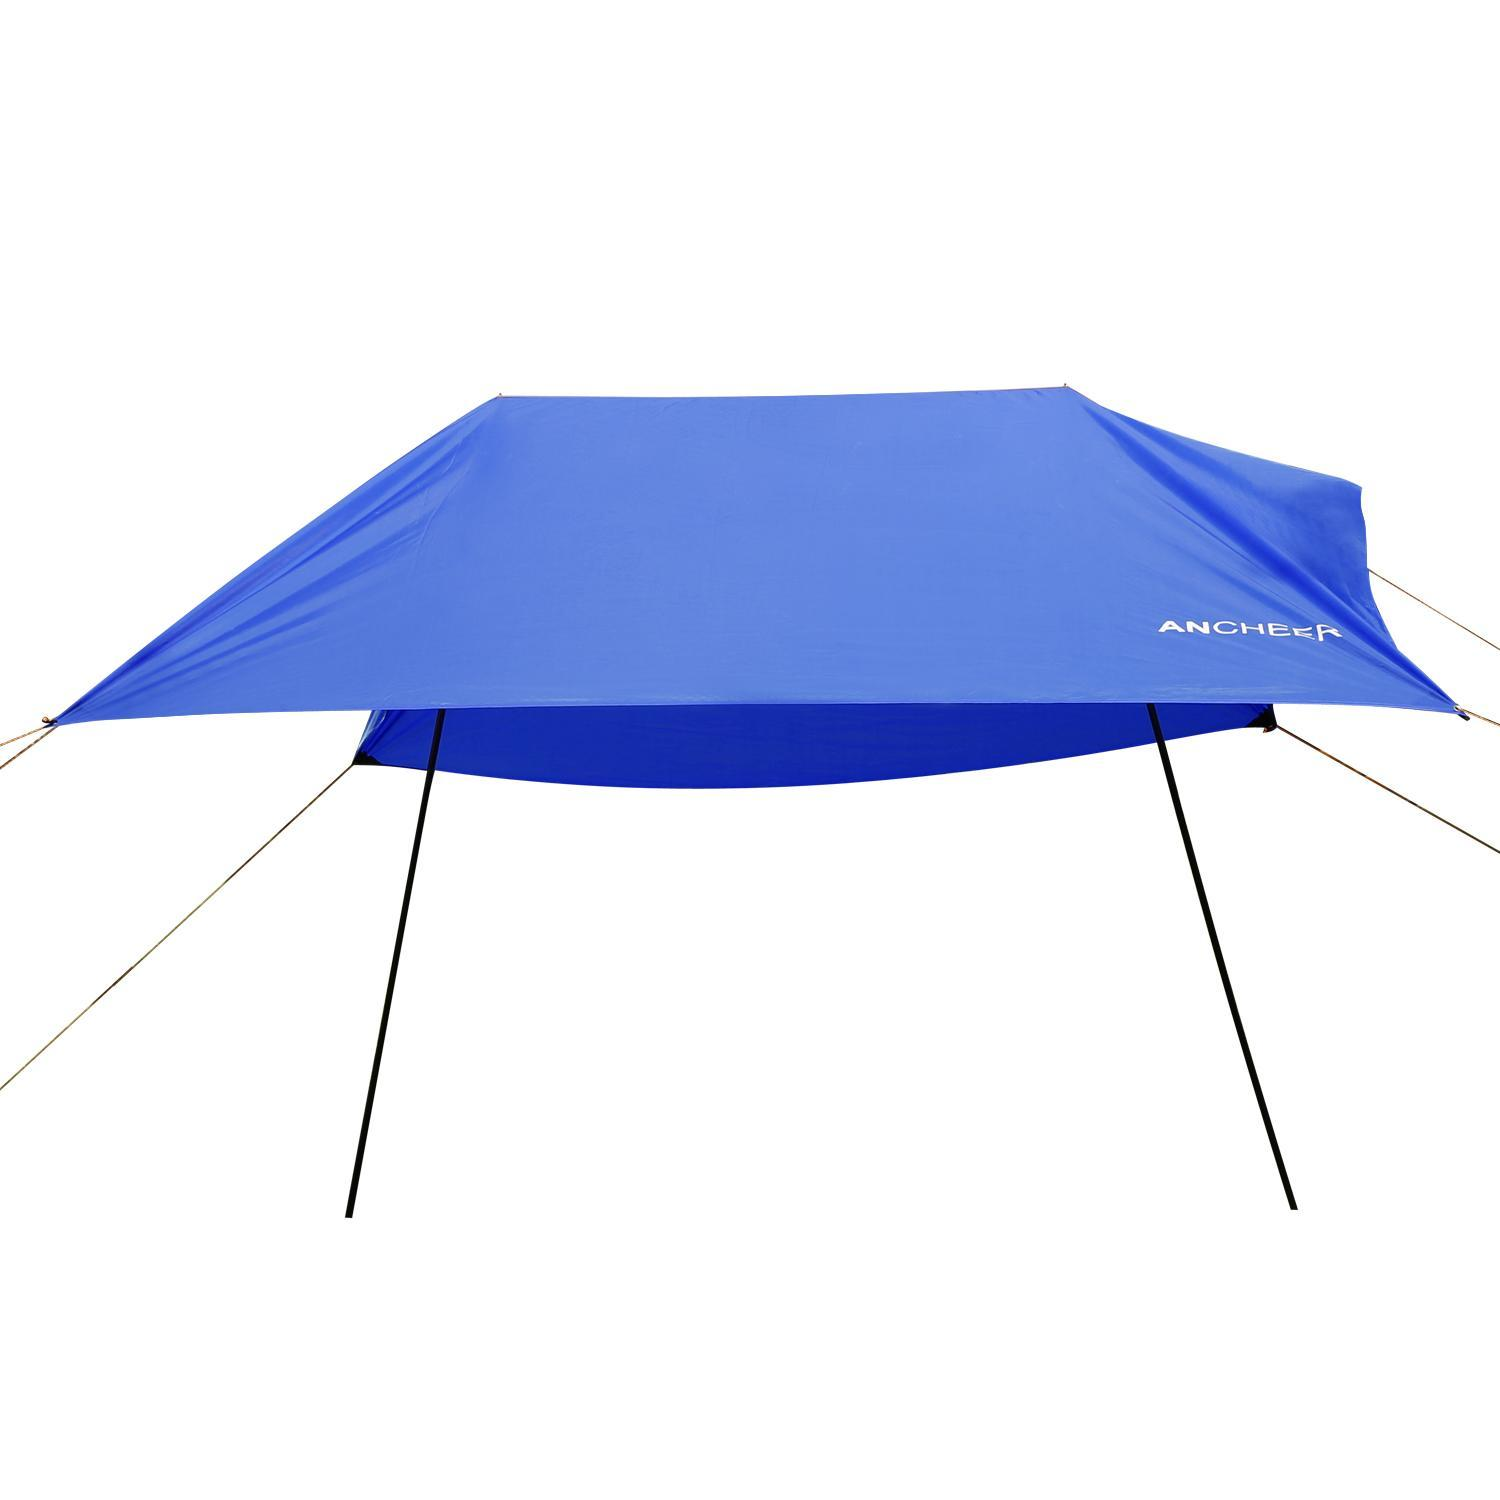 9.8 x 9.8ft  Beach Tent with Sand Anchor, Portable Lightweight  Canopy Sun Shelter